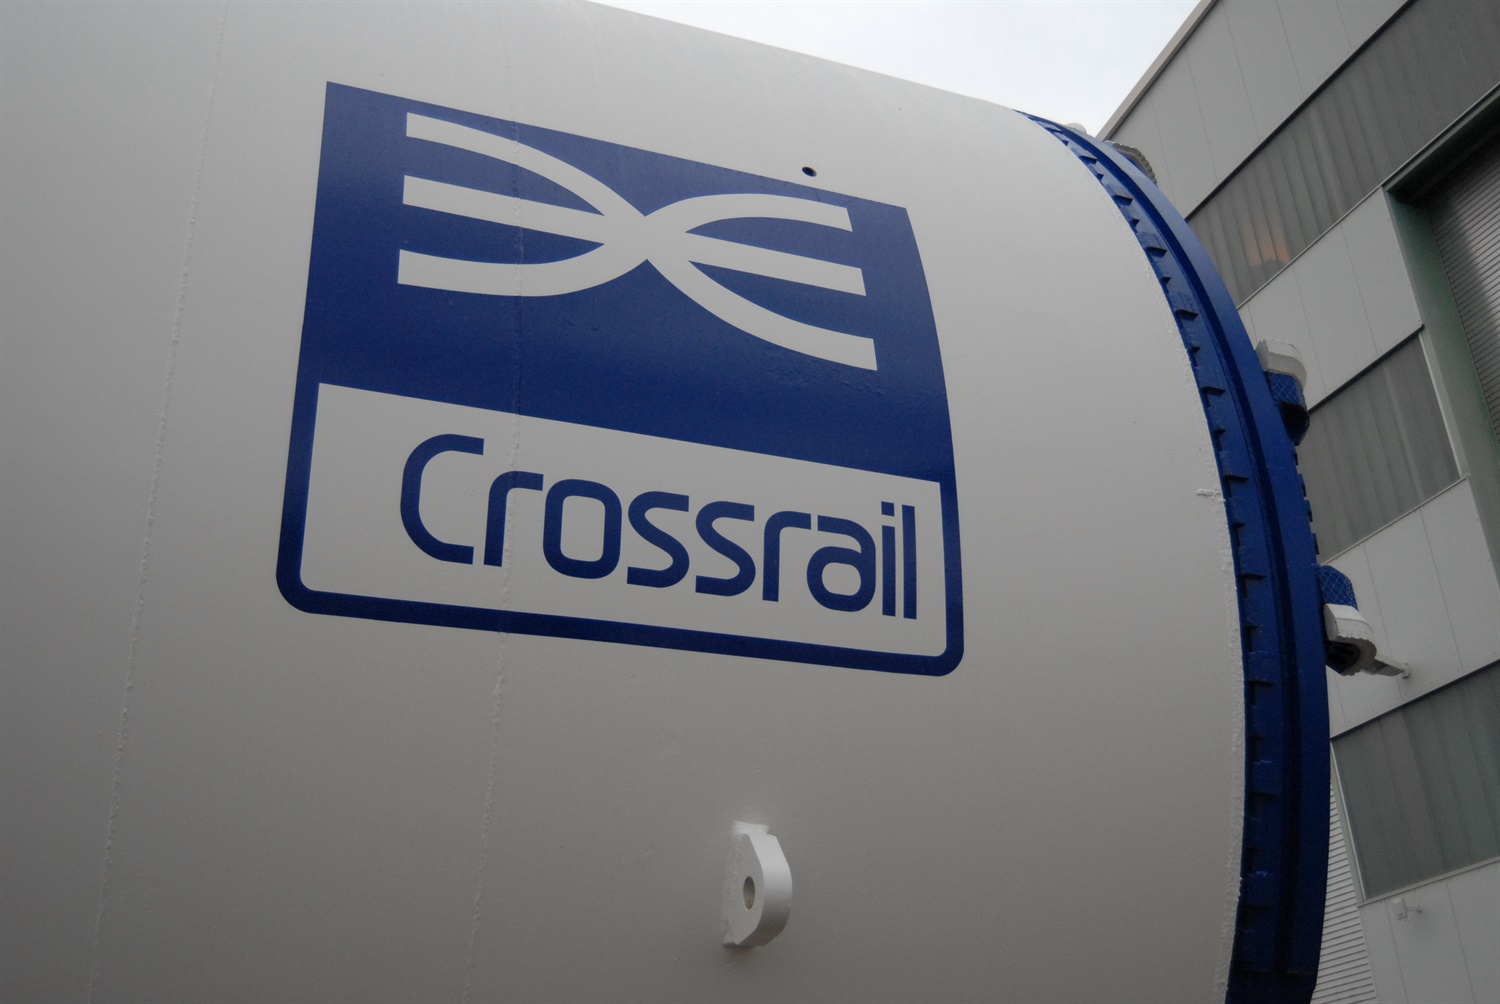 Crossrail dips below its budget as progress slows down